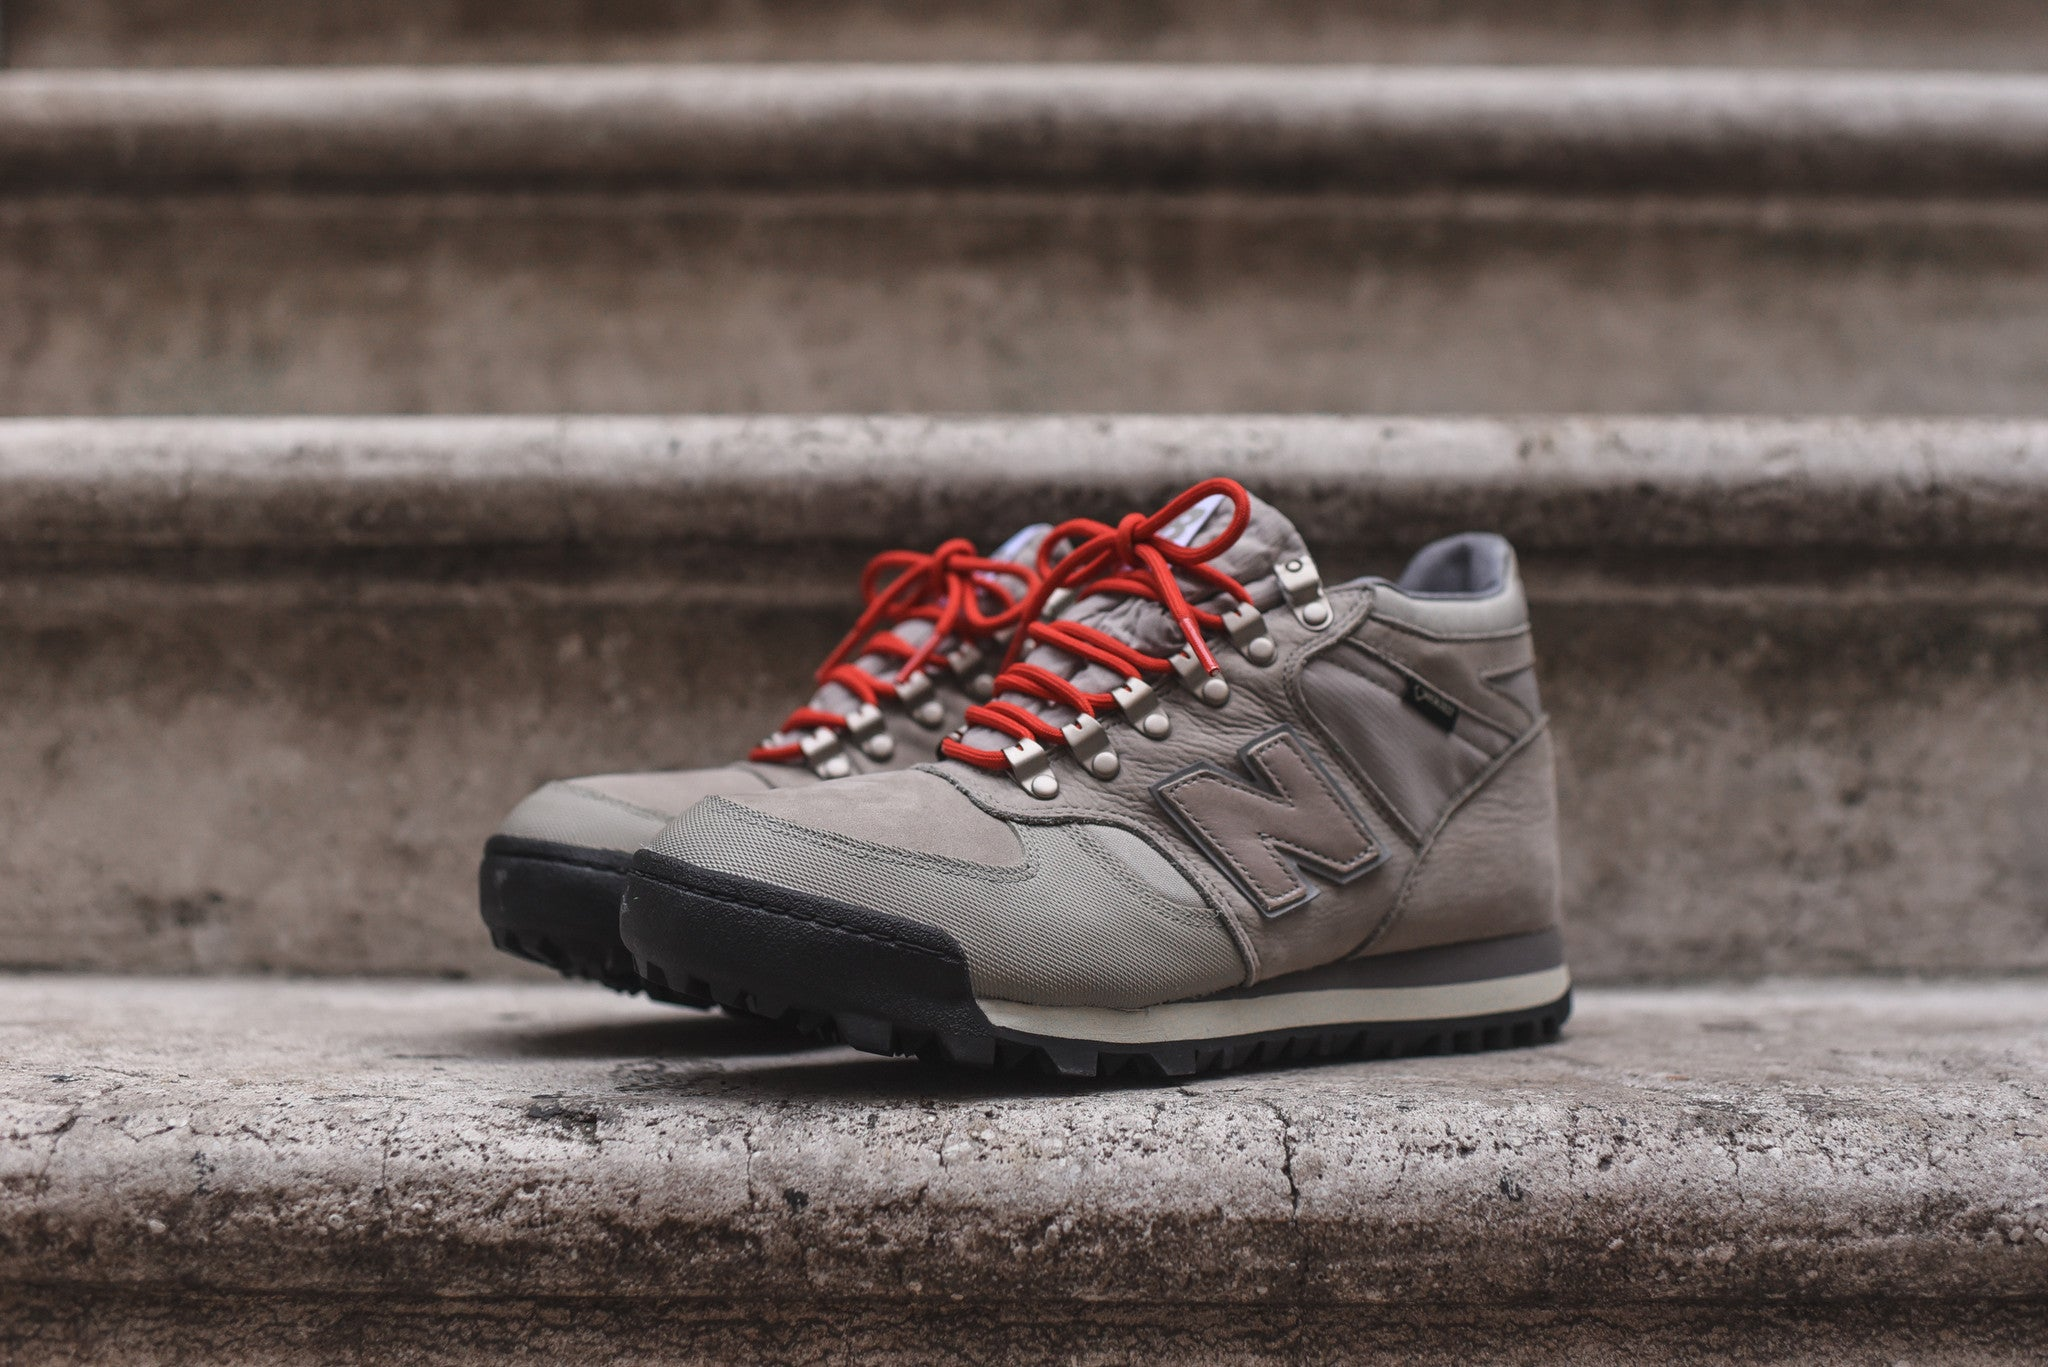 New Balance x Norse Projects Rainier Boot - Beige